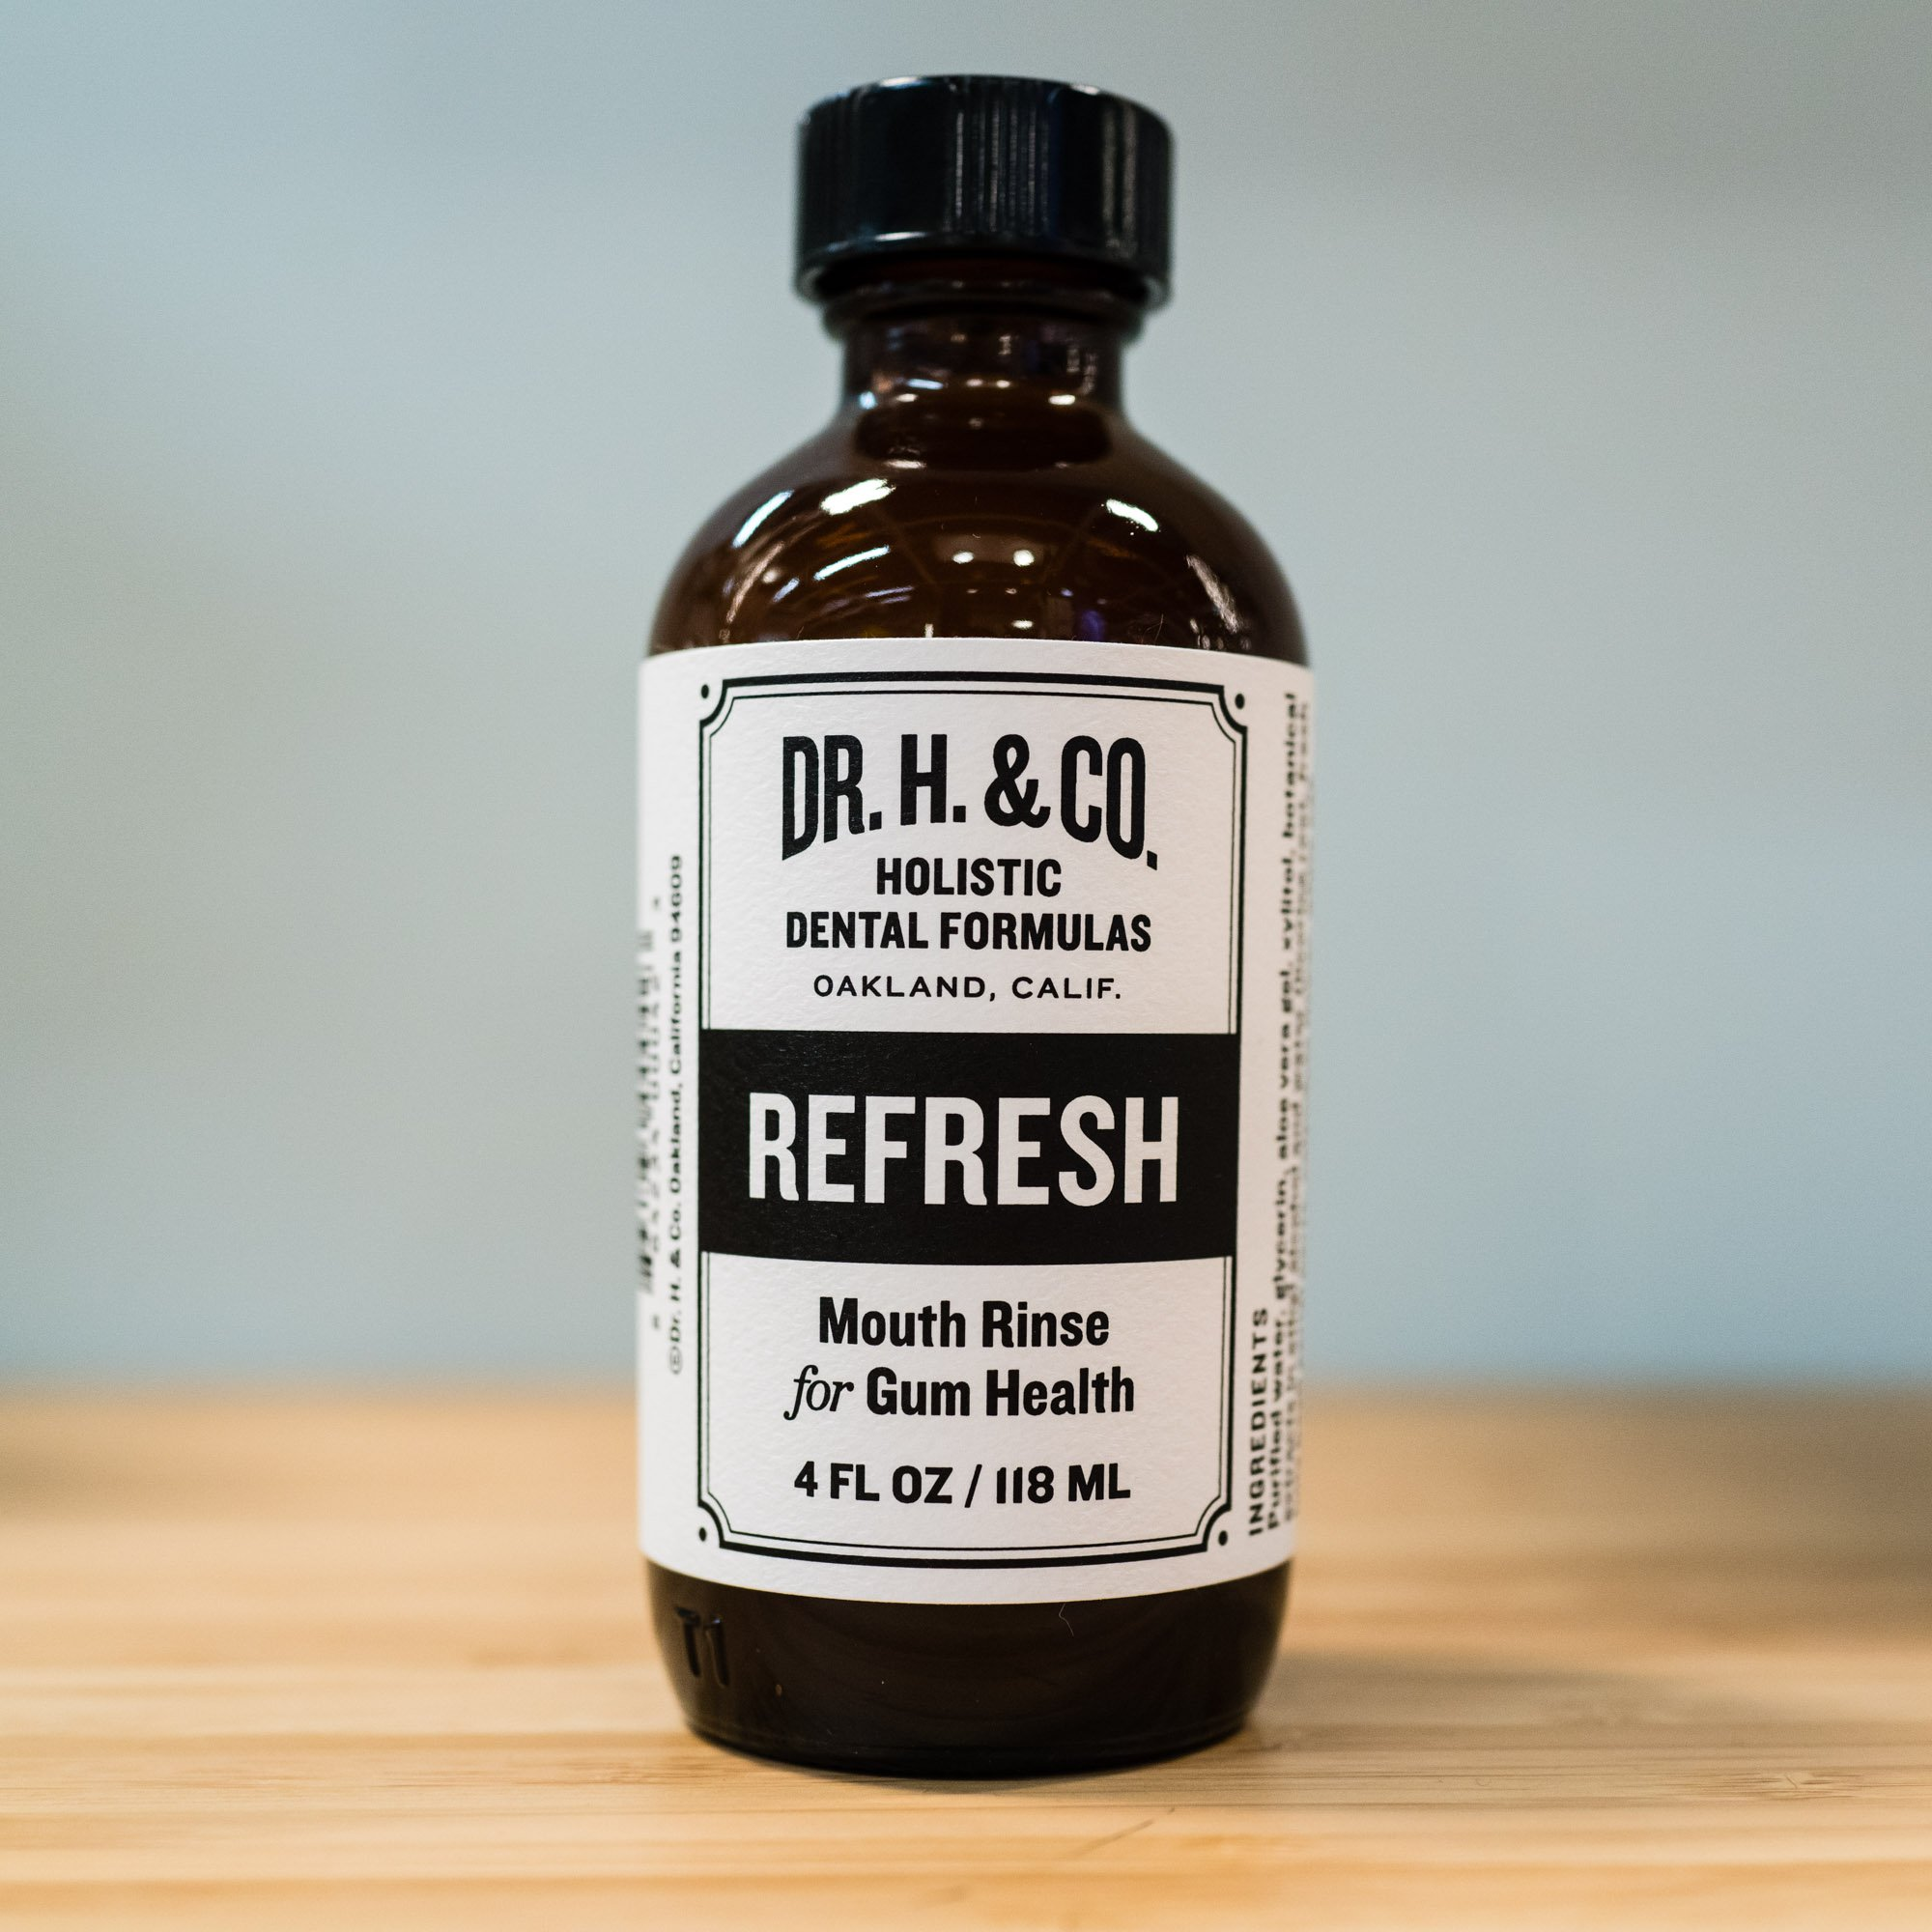 Dr. H. & Co. Dentist Formulated Refresh Mouthwash Ð All Natural Herbal and Holistic Mouth Rinse for Healthy Gums and Teeth (4 oz Glass Bottle) by Dr. H. & Co. (Image #4)